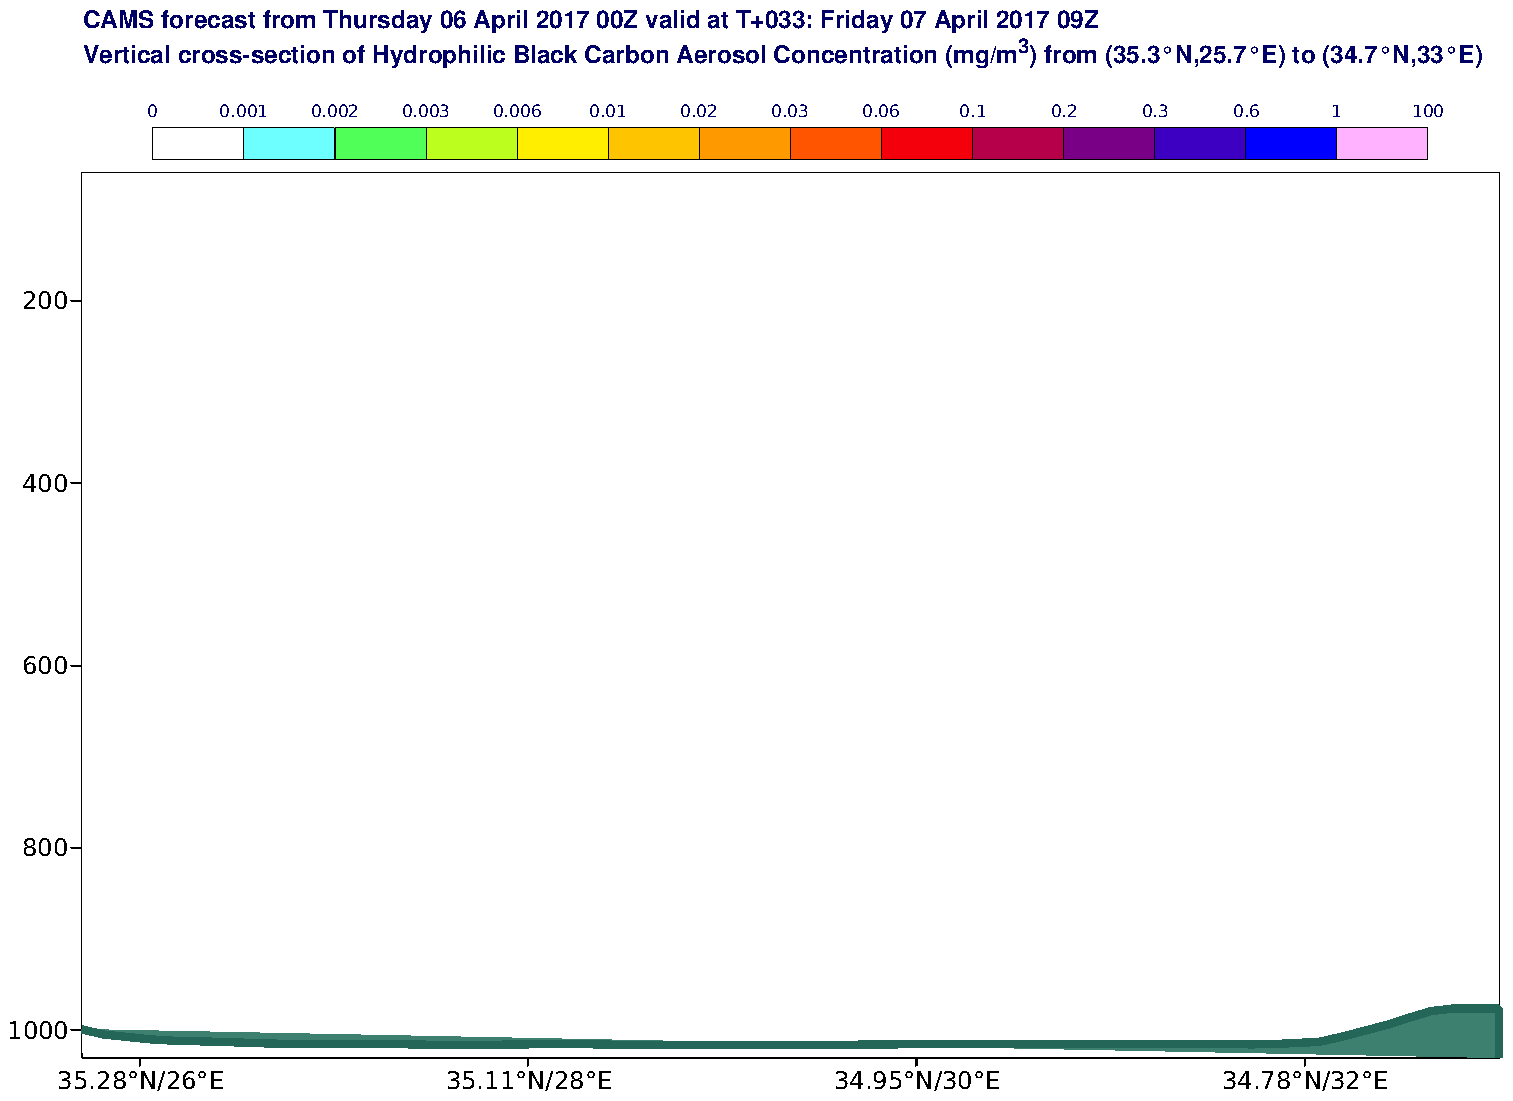 Vertical cross-section of Hydrophilic Black Carbon Aerosol Concentration (mg/m3) valid at T33 - 2017-04-07 09:00